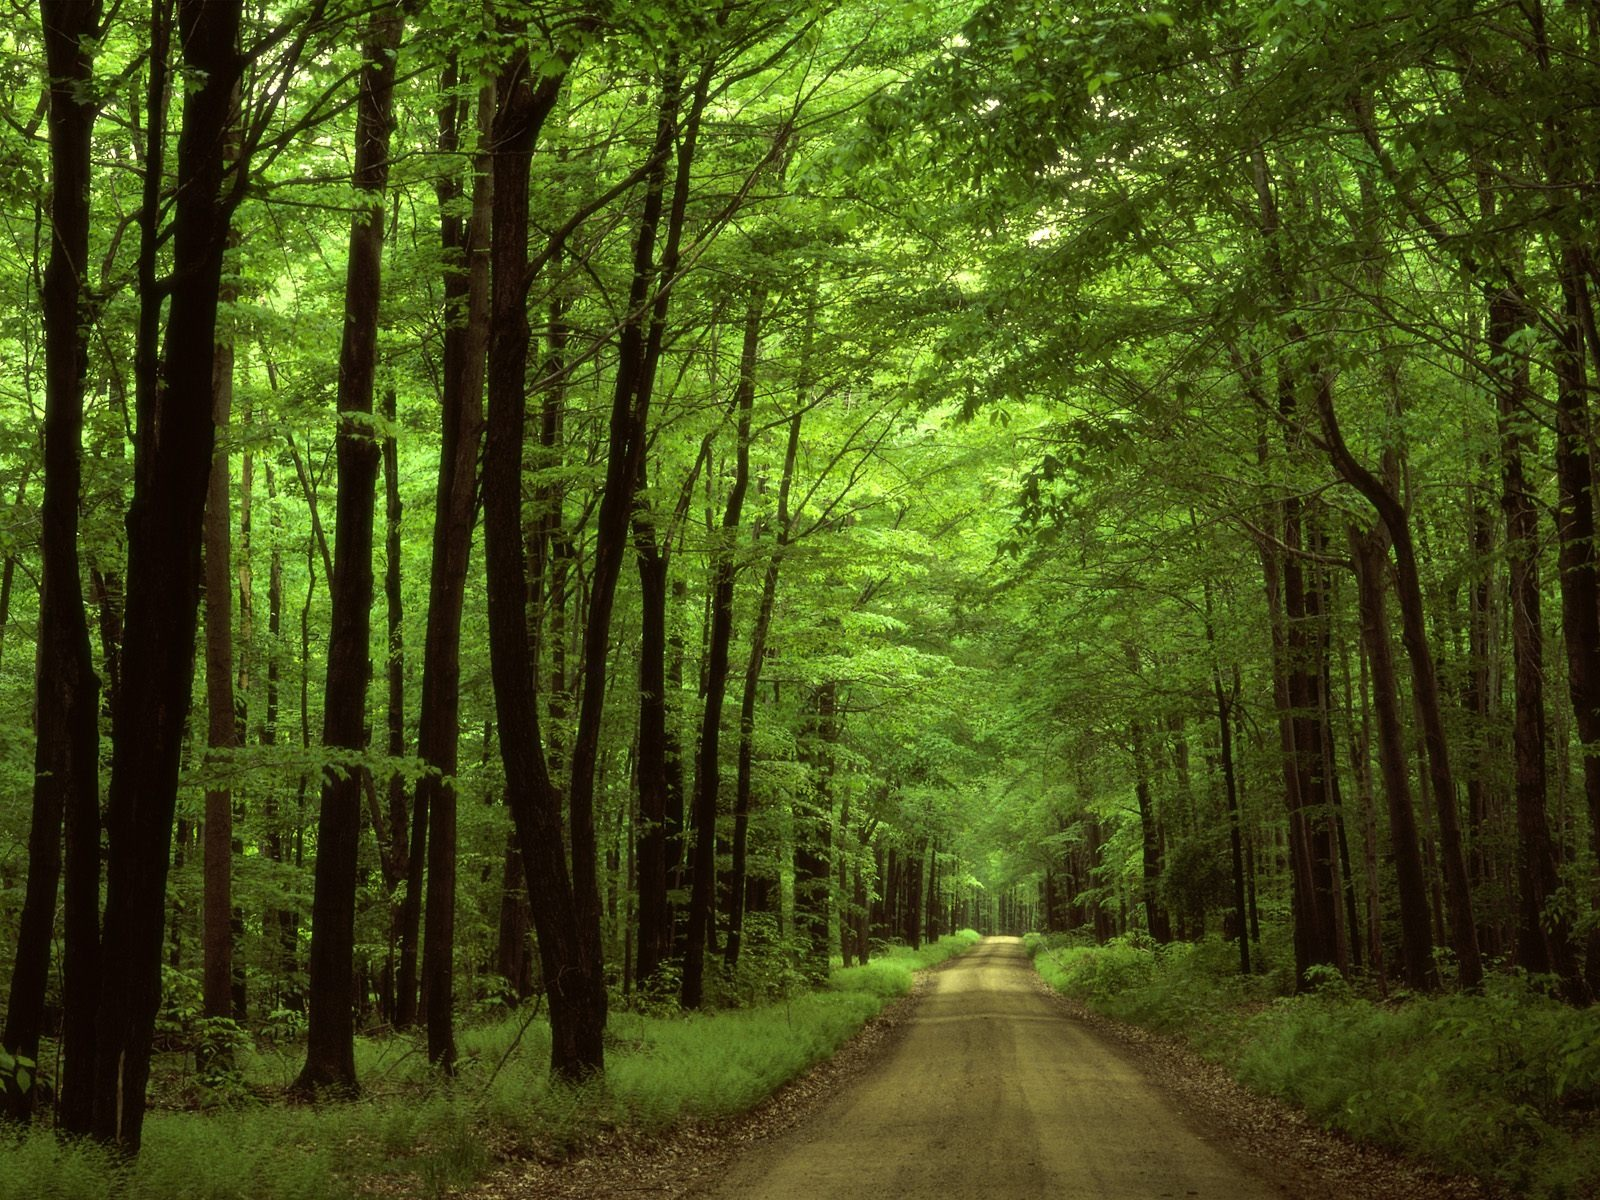 Forest Road Wallpaper Landscape Nature Wallpapers